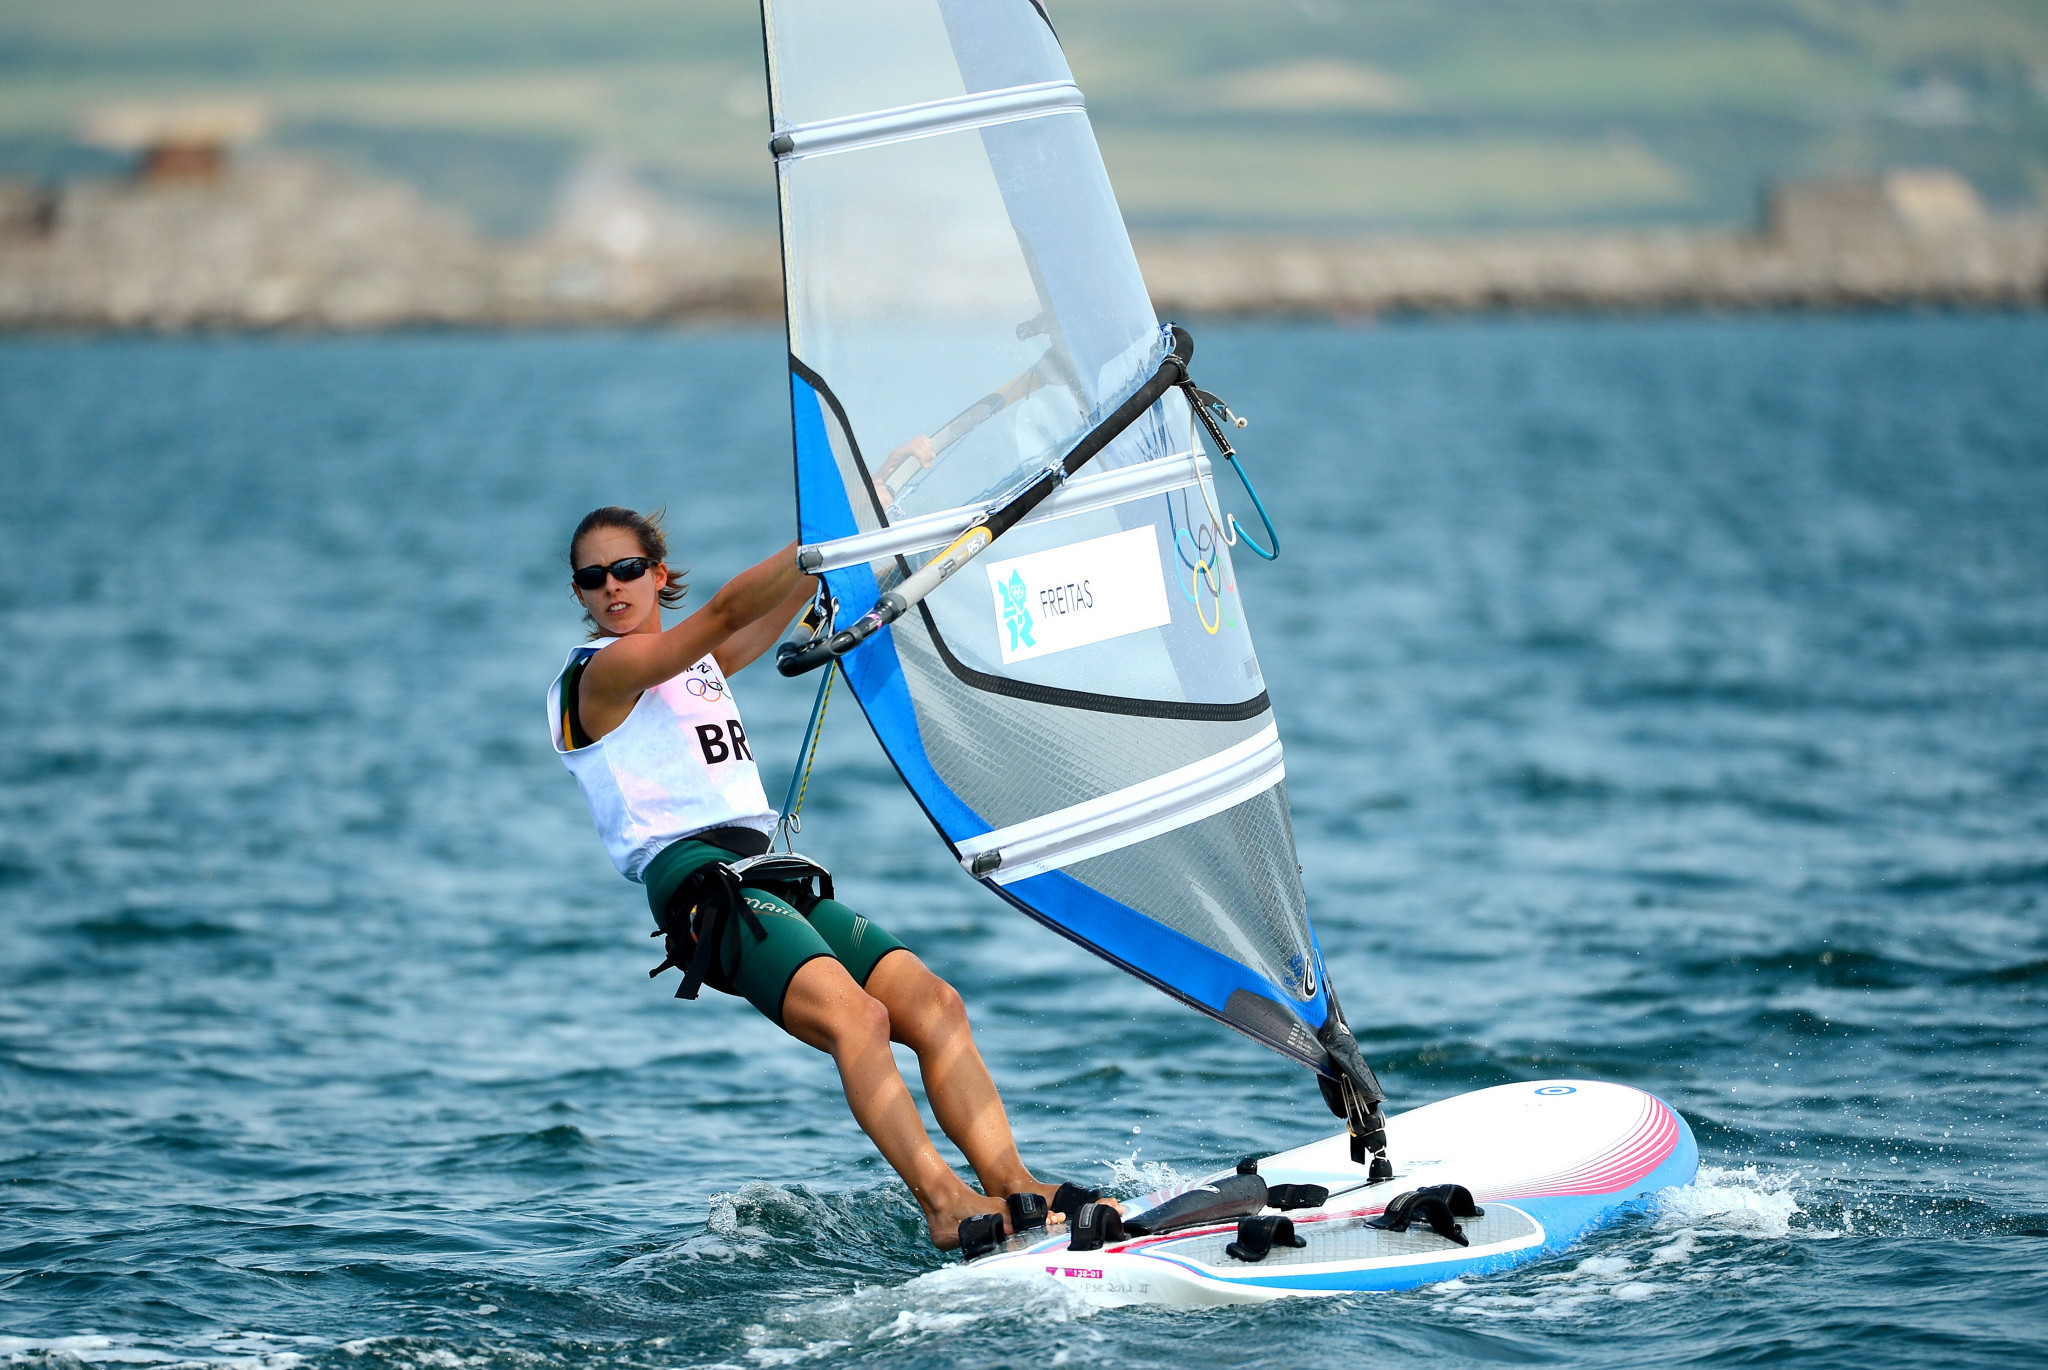 Sailing World Cup Final set to begin in Marseille